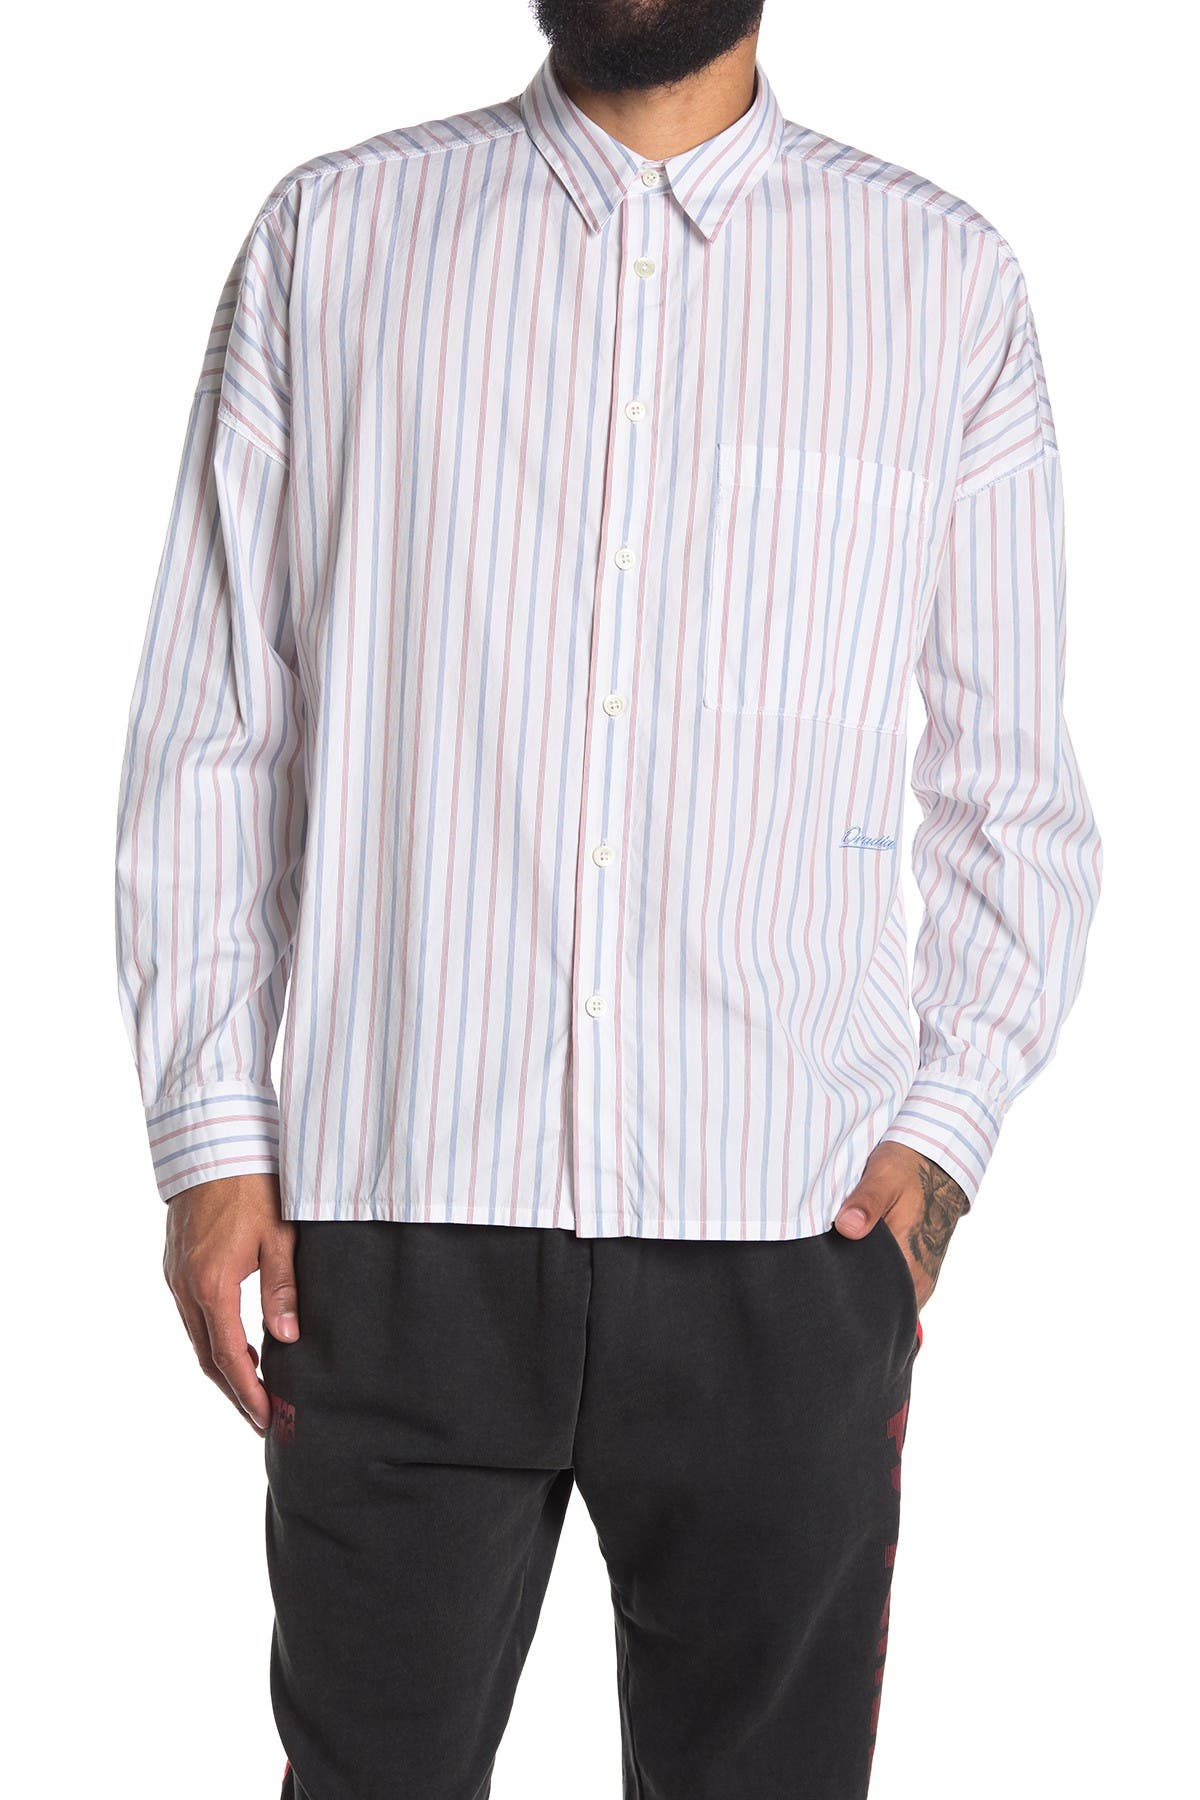 Image of OVADIA AND SONS Lex Oversized Stripe Shirt